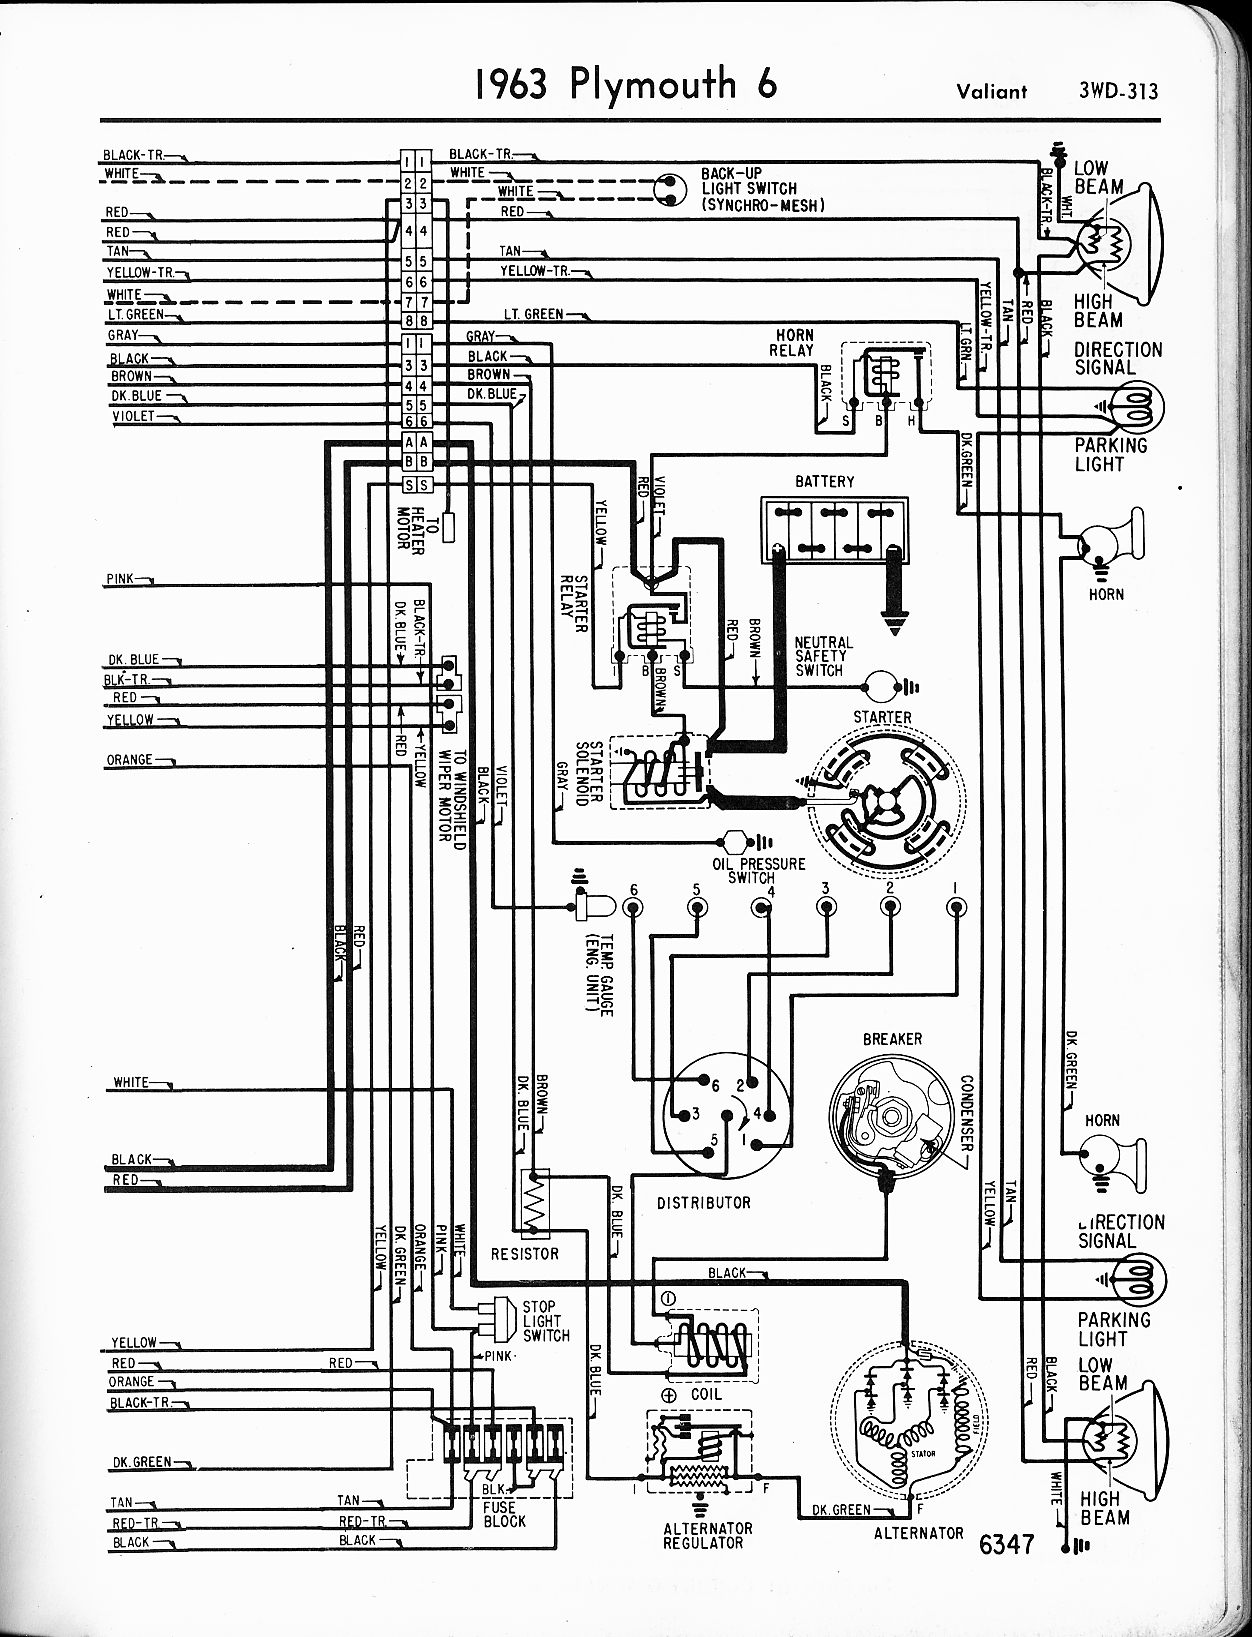 64 Cj5 Wiring Diagram Worksheet And 1956 Jeep 1964 Plymouth Valiant Schematics Diagrams U2022 Rh Parntesis Co 1974 1983